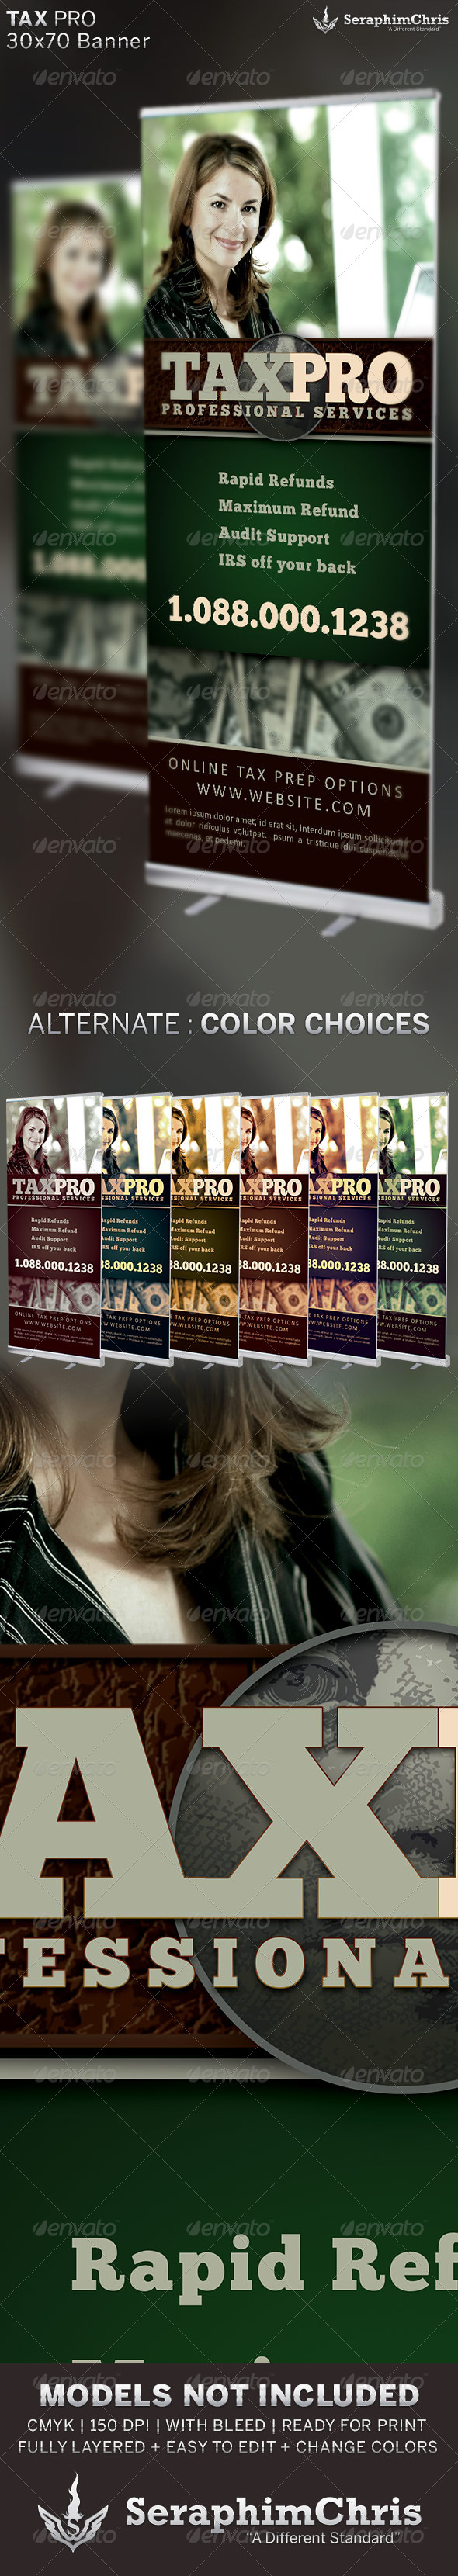 Tax Pro Banner Template - Signage Print Templates